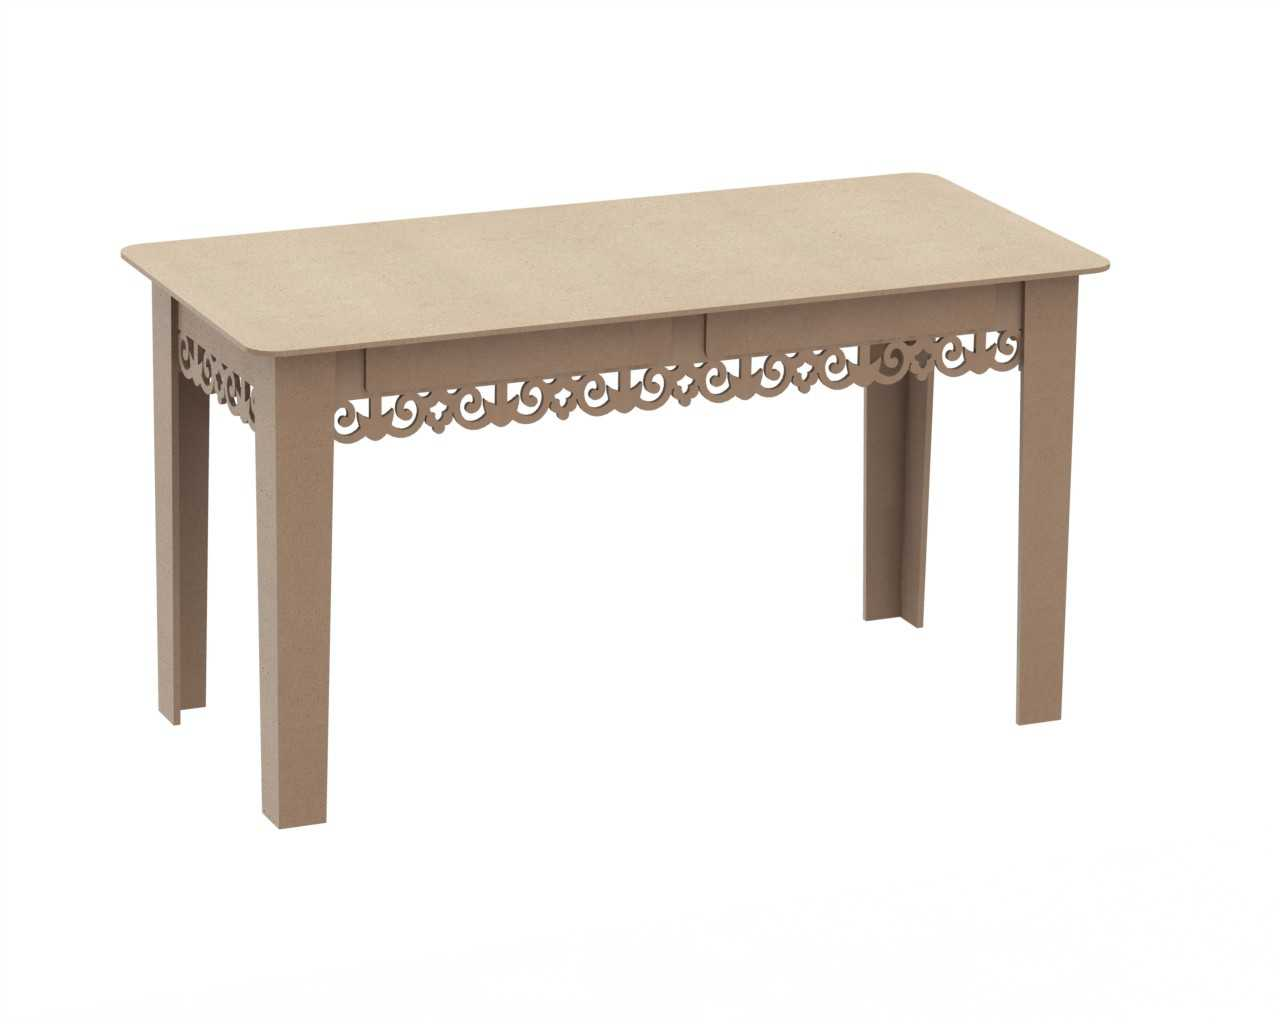 Table With 2 Drawers Free DXF File